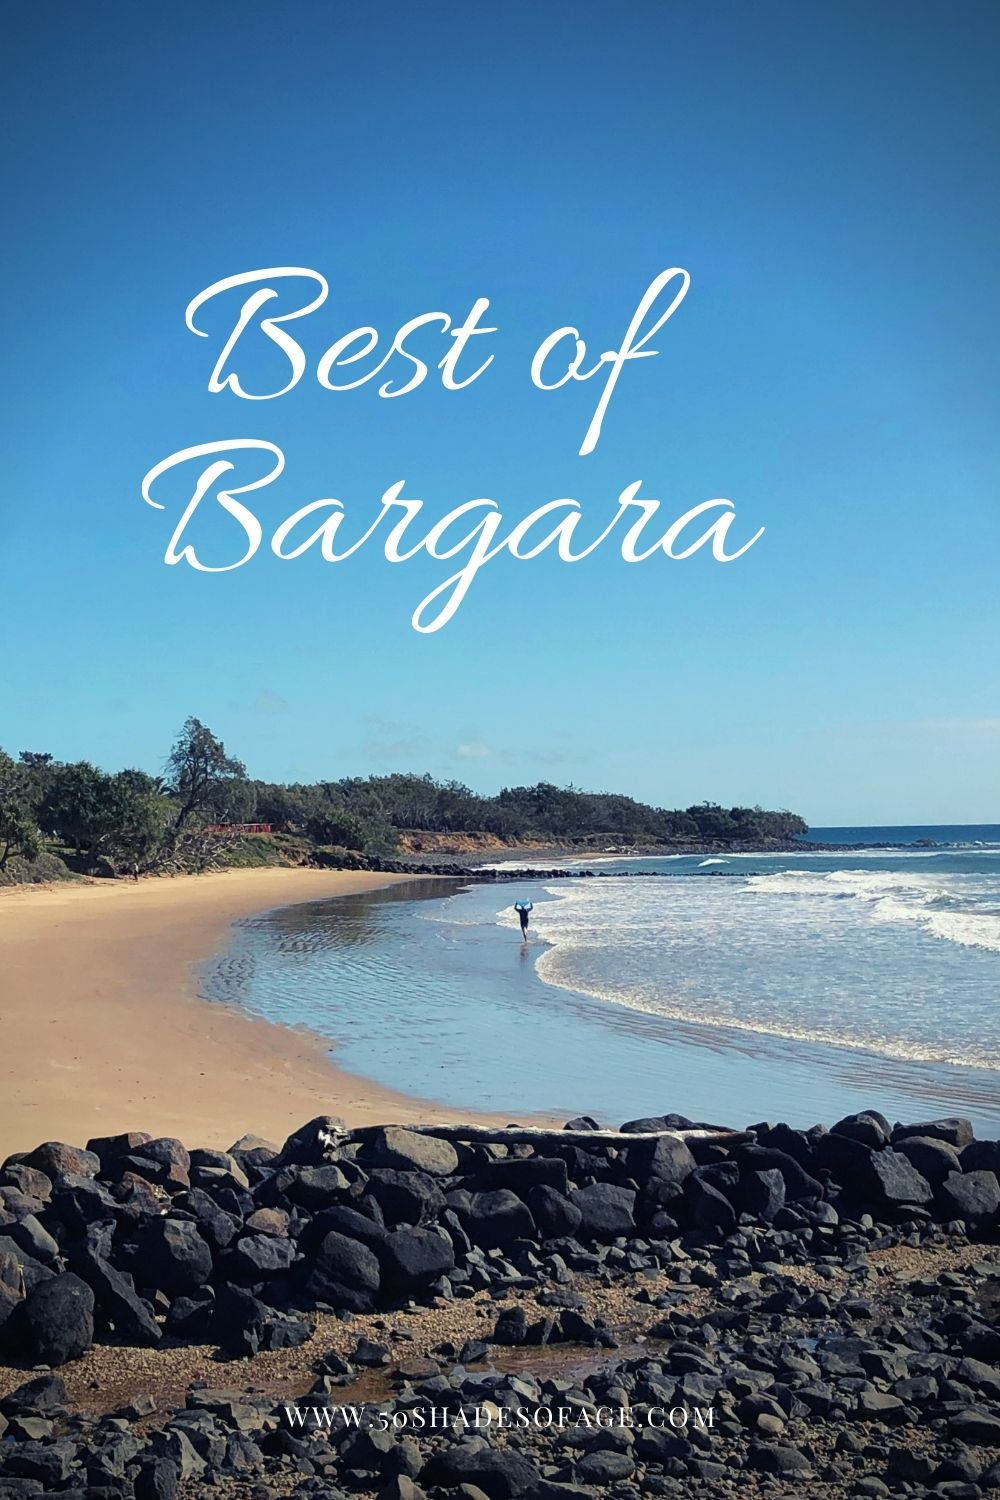 Best of Bargara